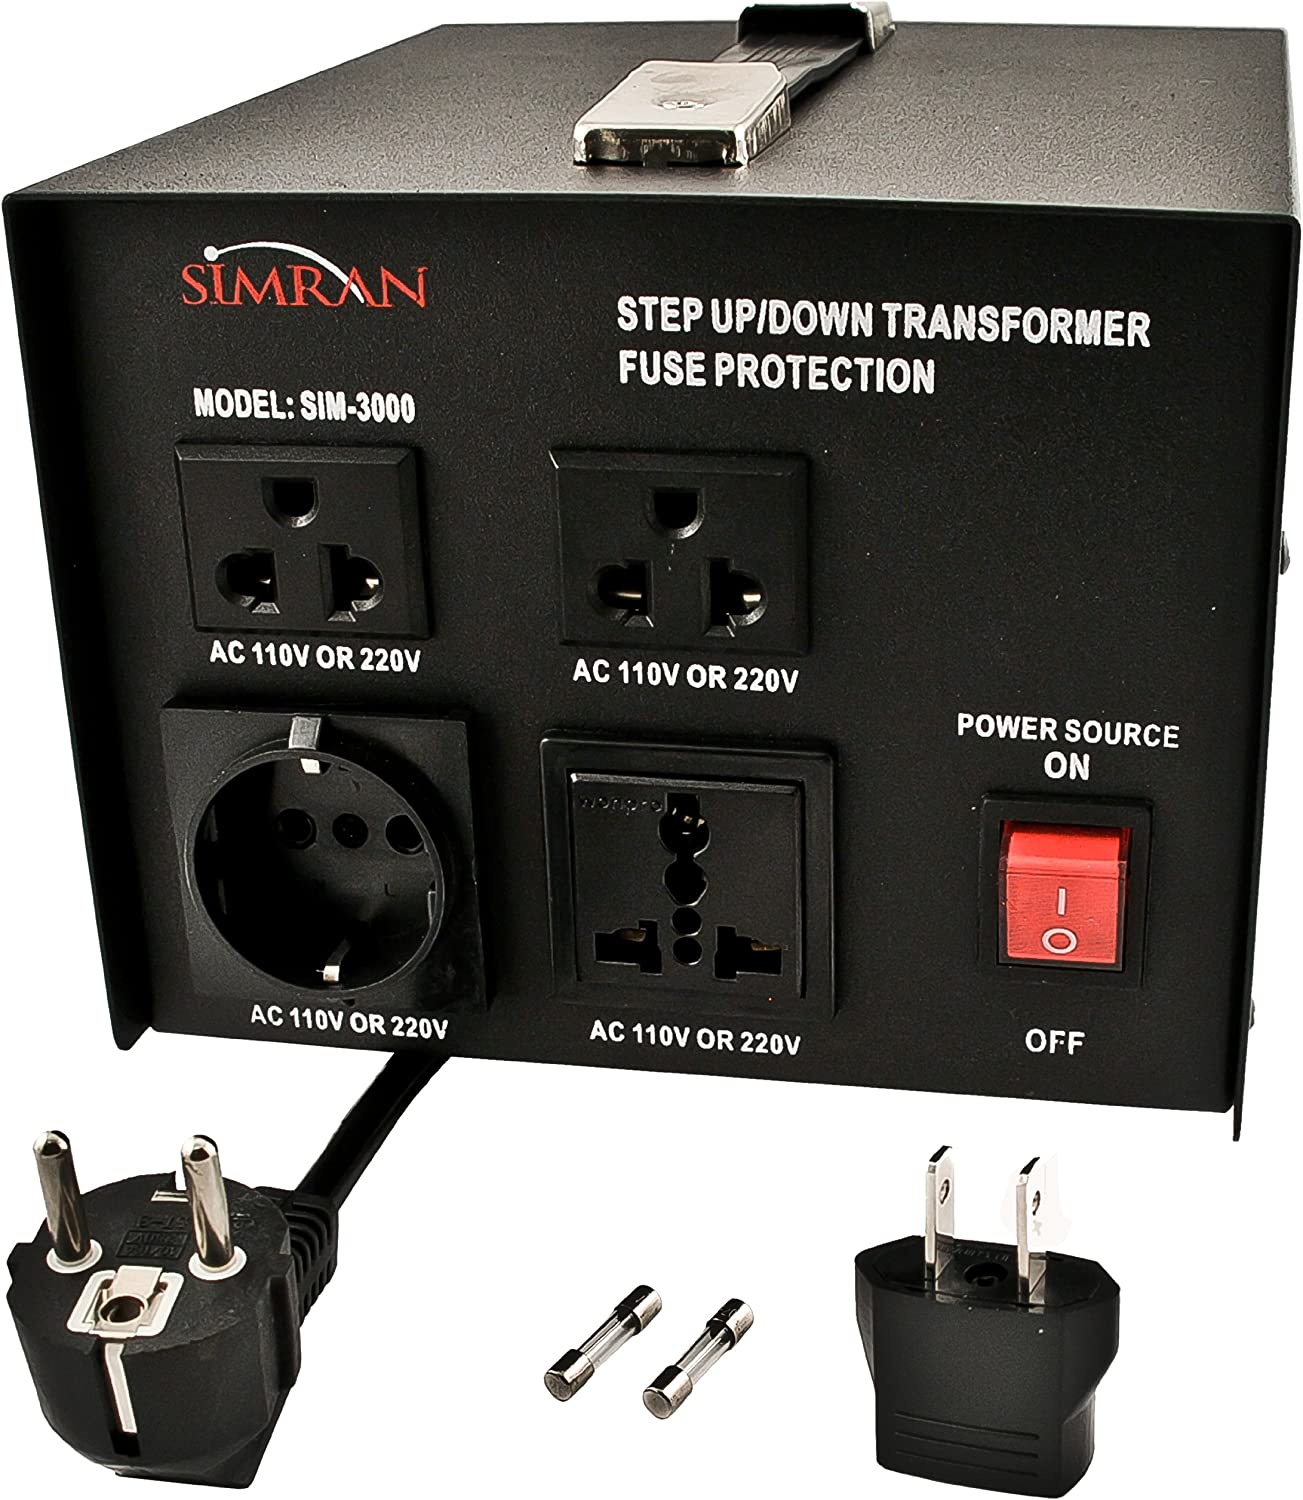 Simran SIM-3000 Step Up Down Voltage Transformer Power Converter, Black